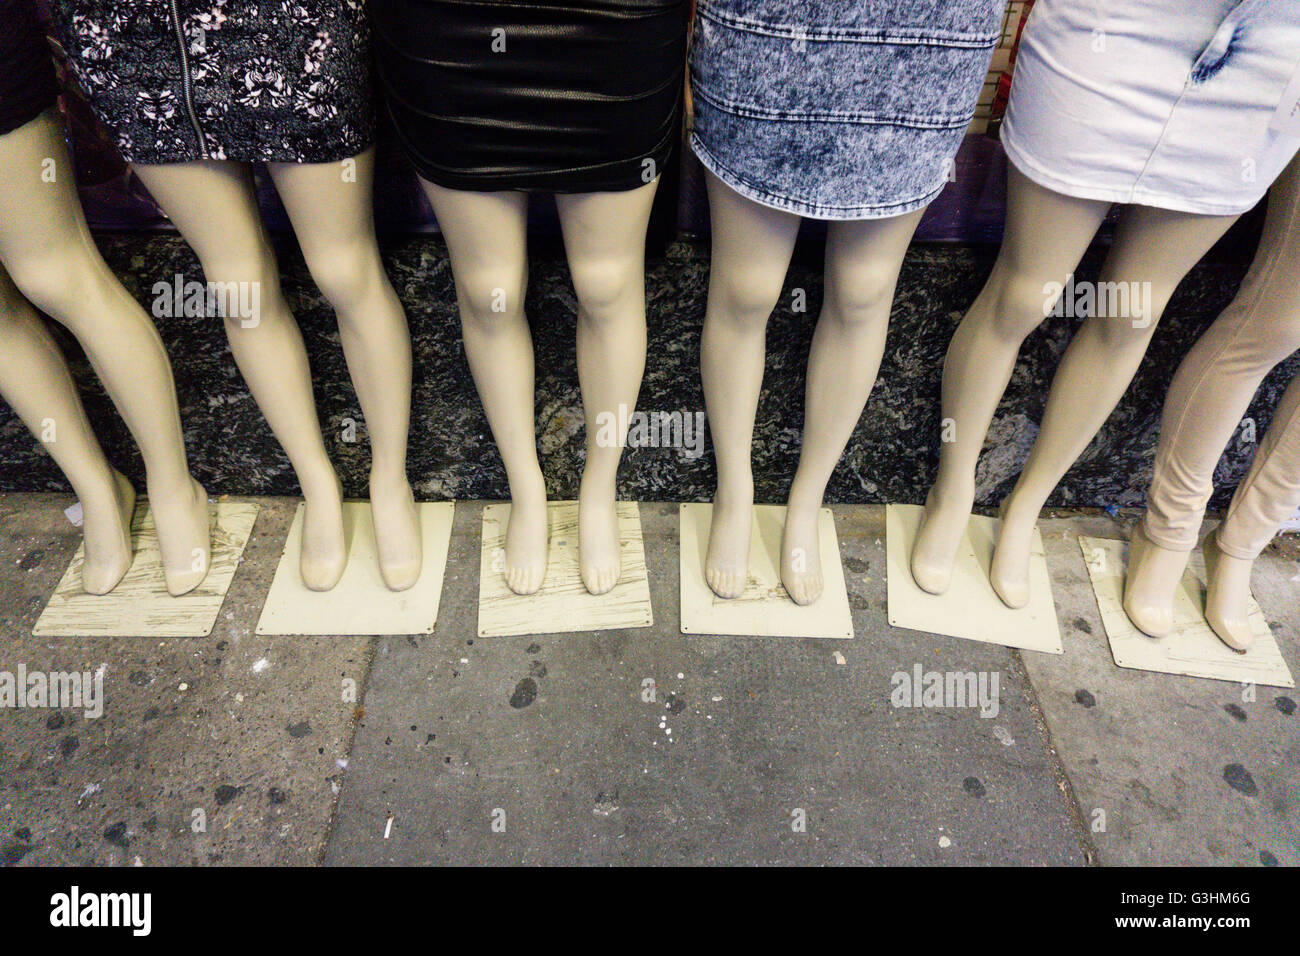 Detail of six female dummies on sidewalk wearing mini skirts Stock Photo